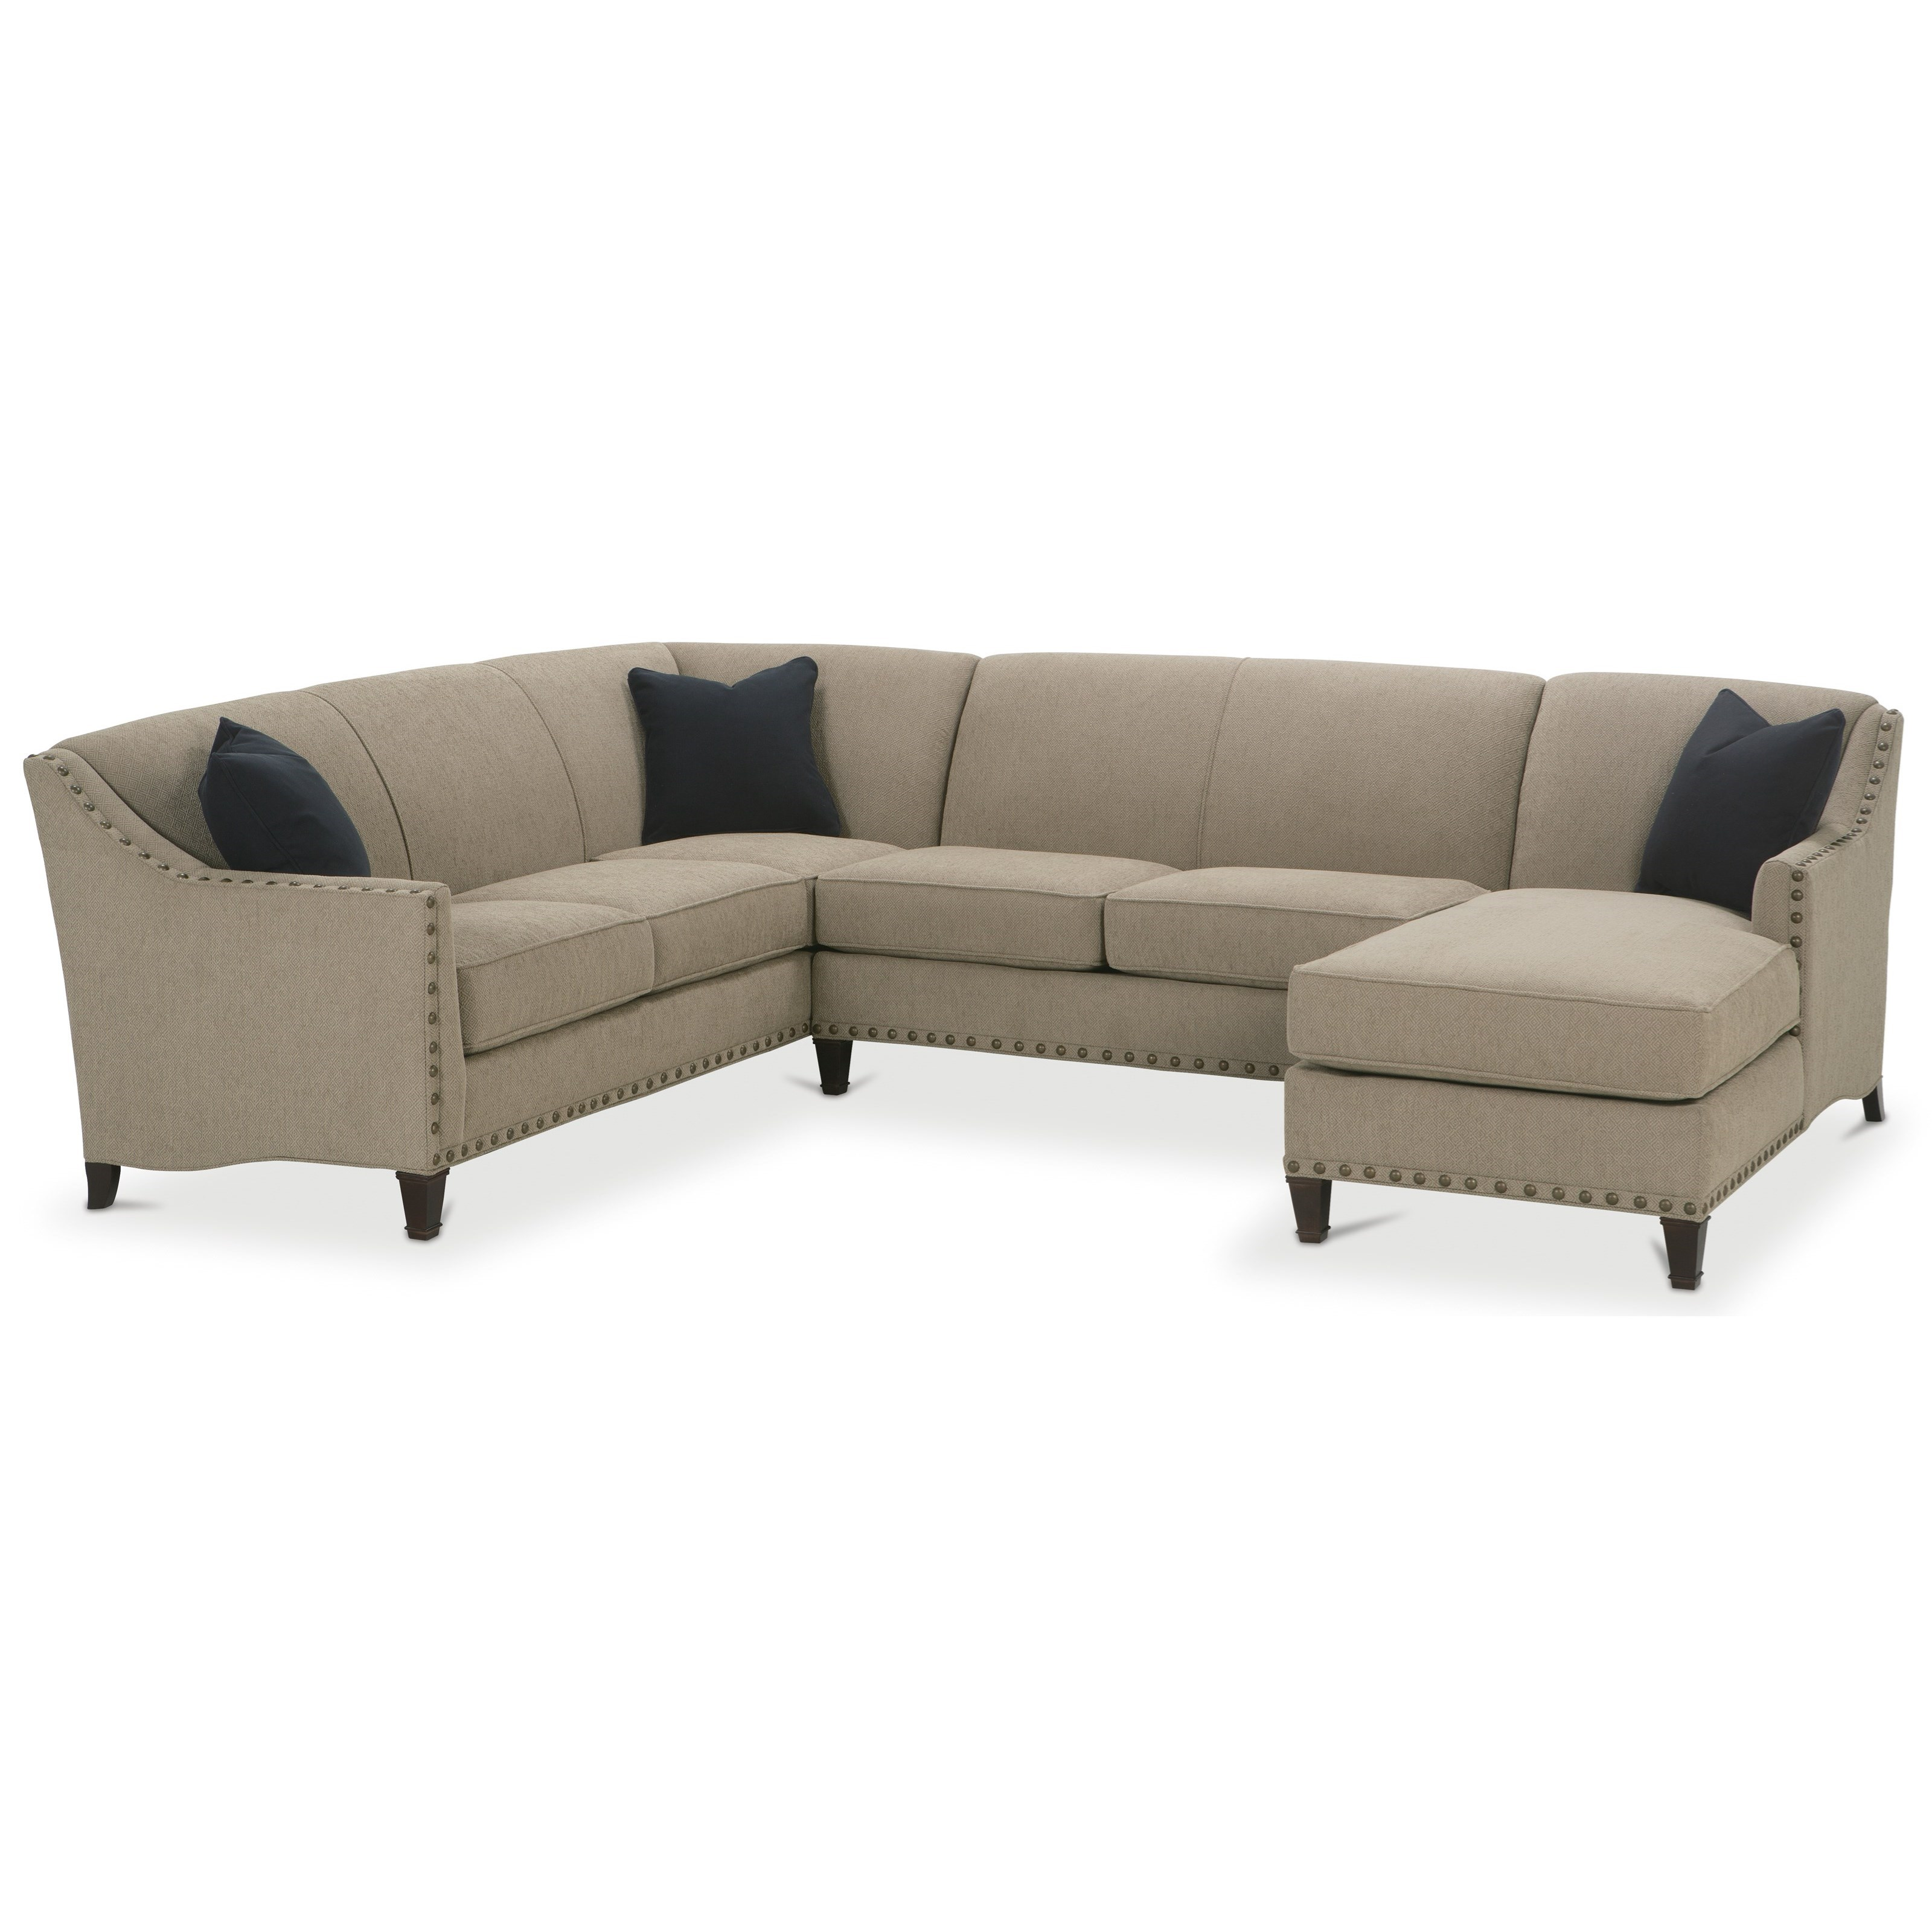 Rockford Traditional 3 Piece Sectional by Rowe at Story & Lee Furniture